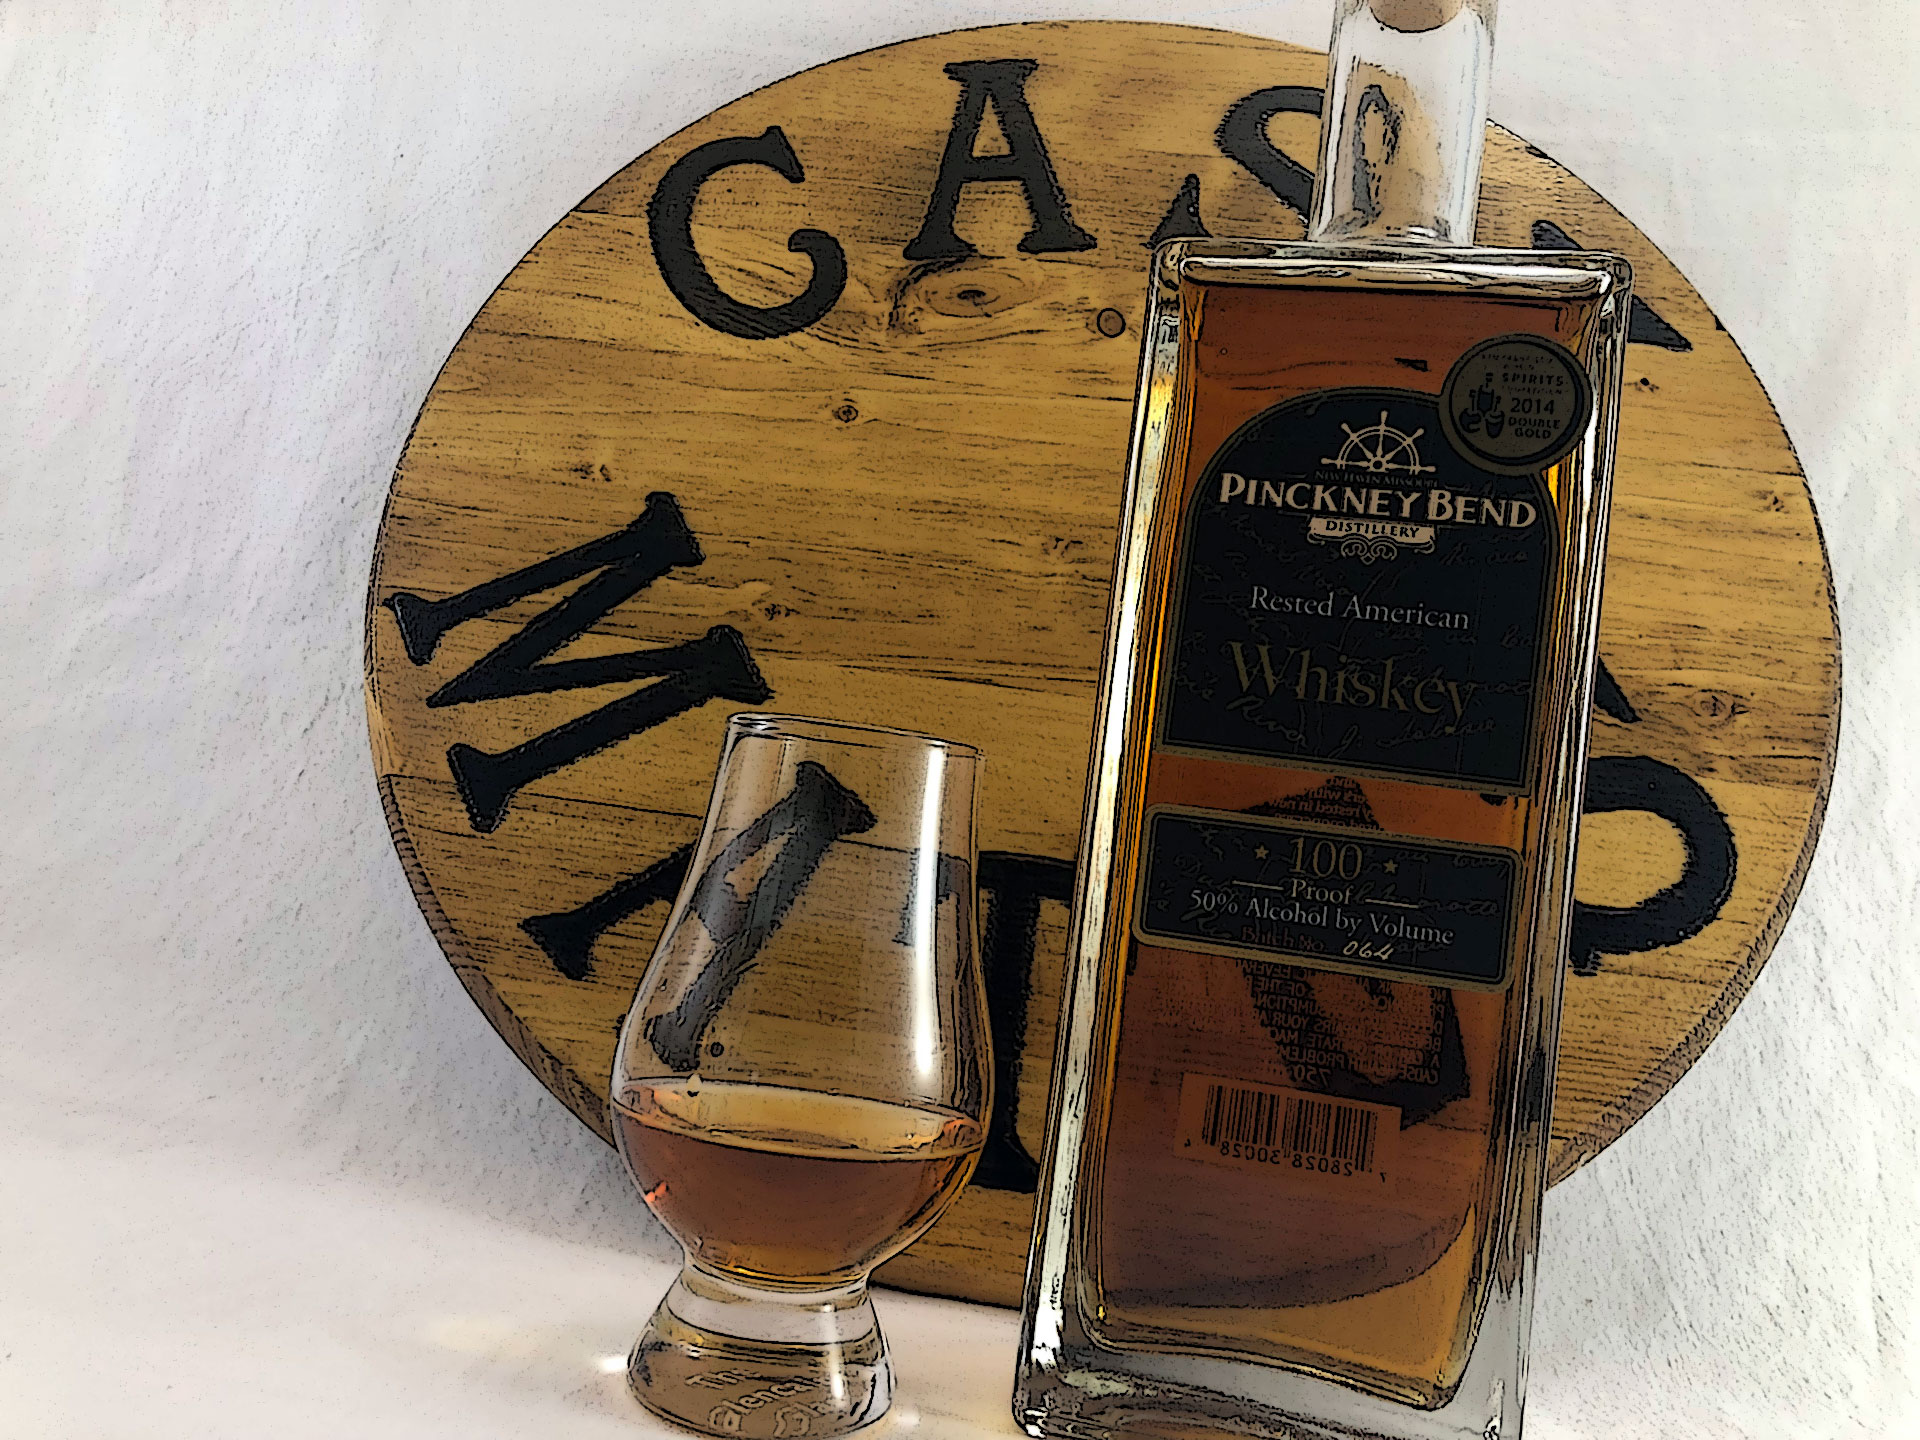 Pinckney Bend Rested American Whiskey - The Cask Mates Podcast